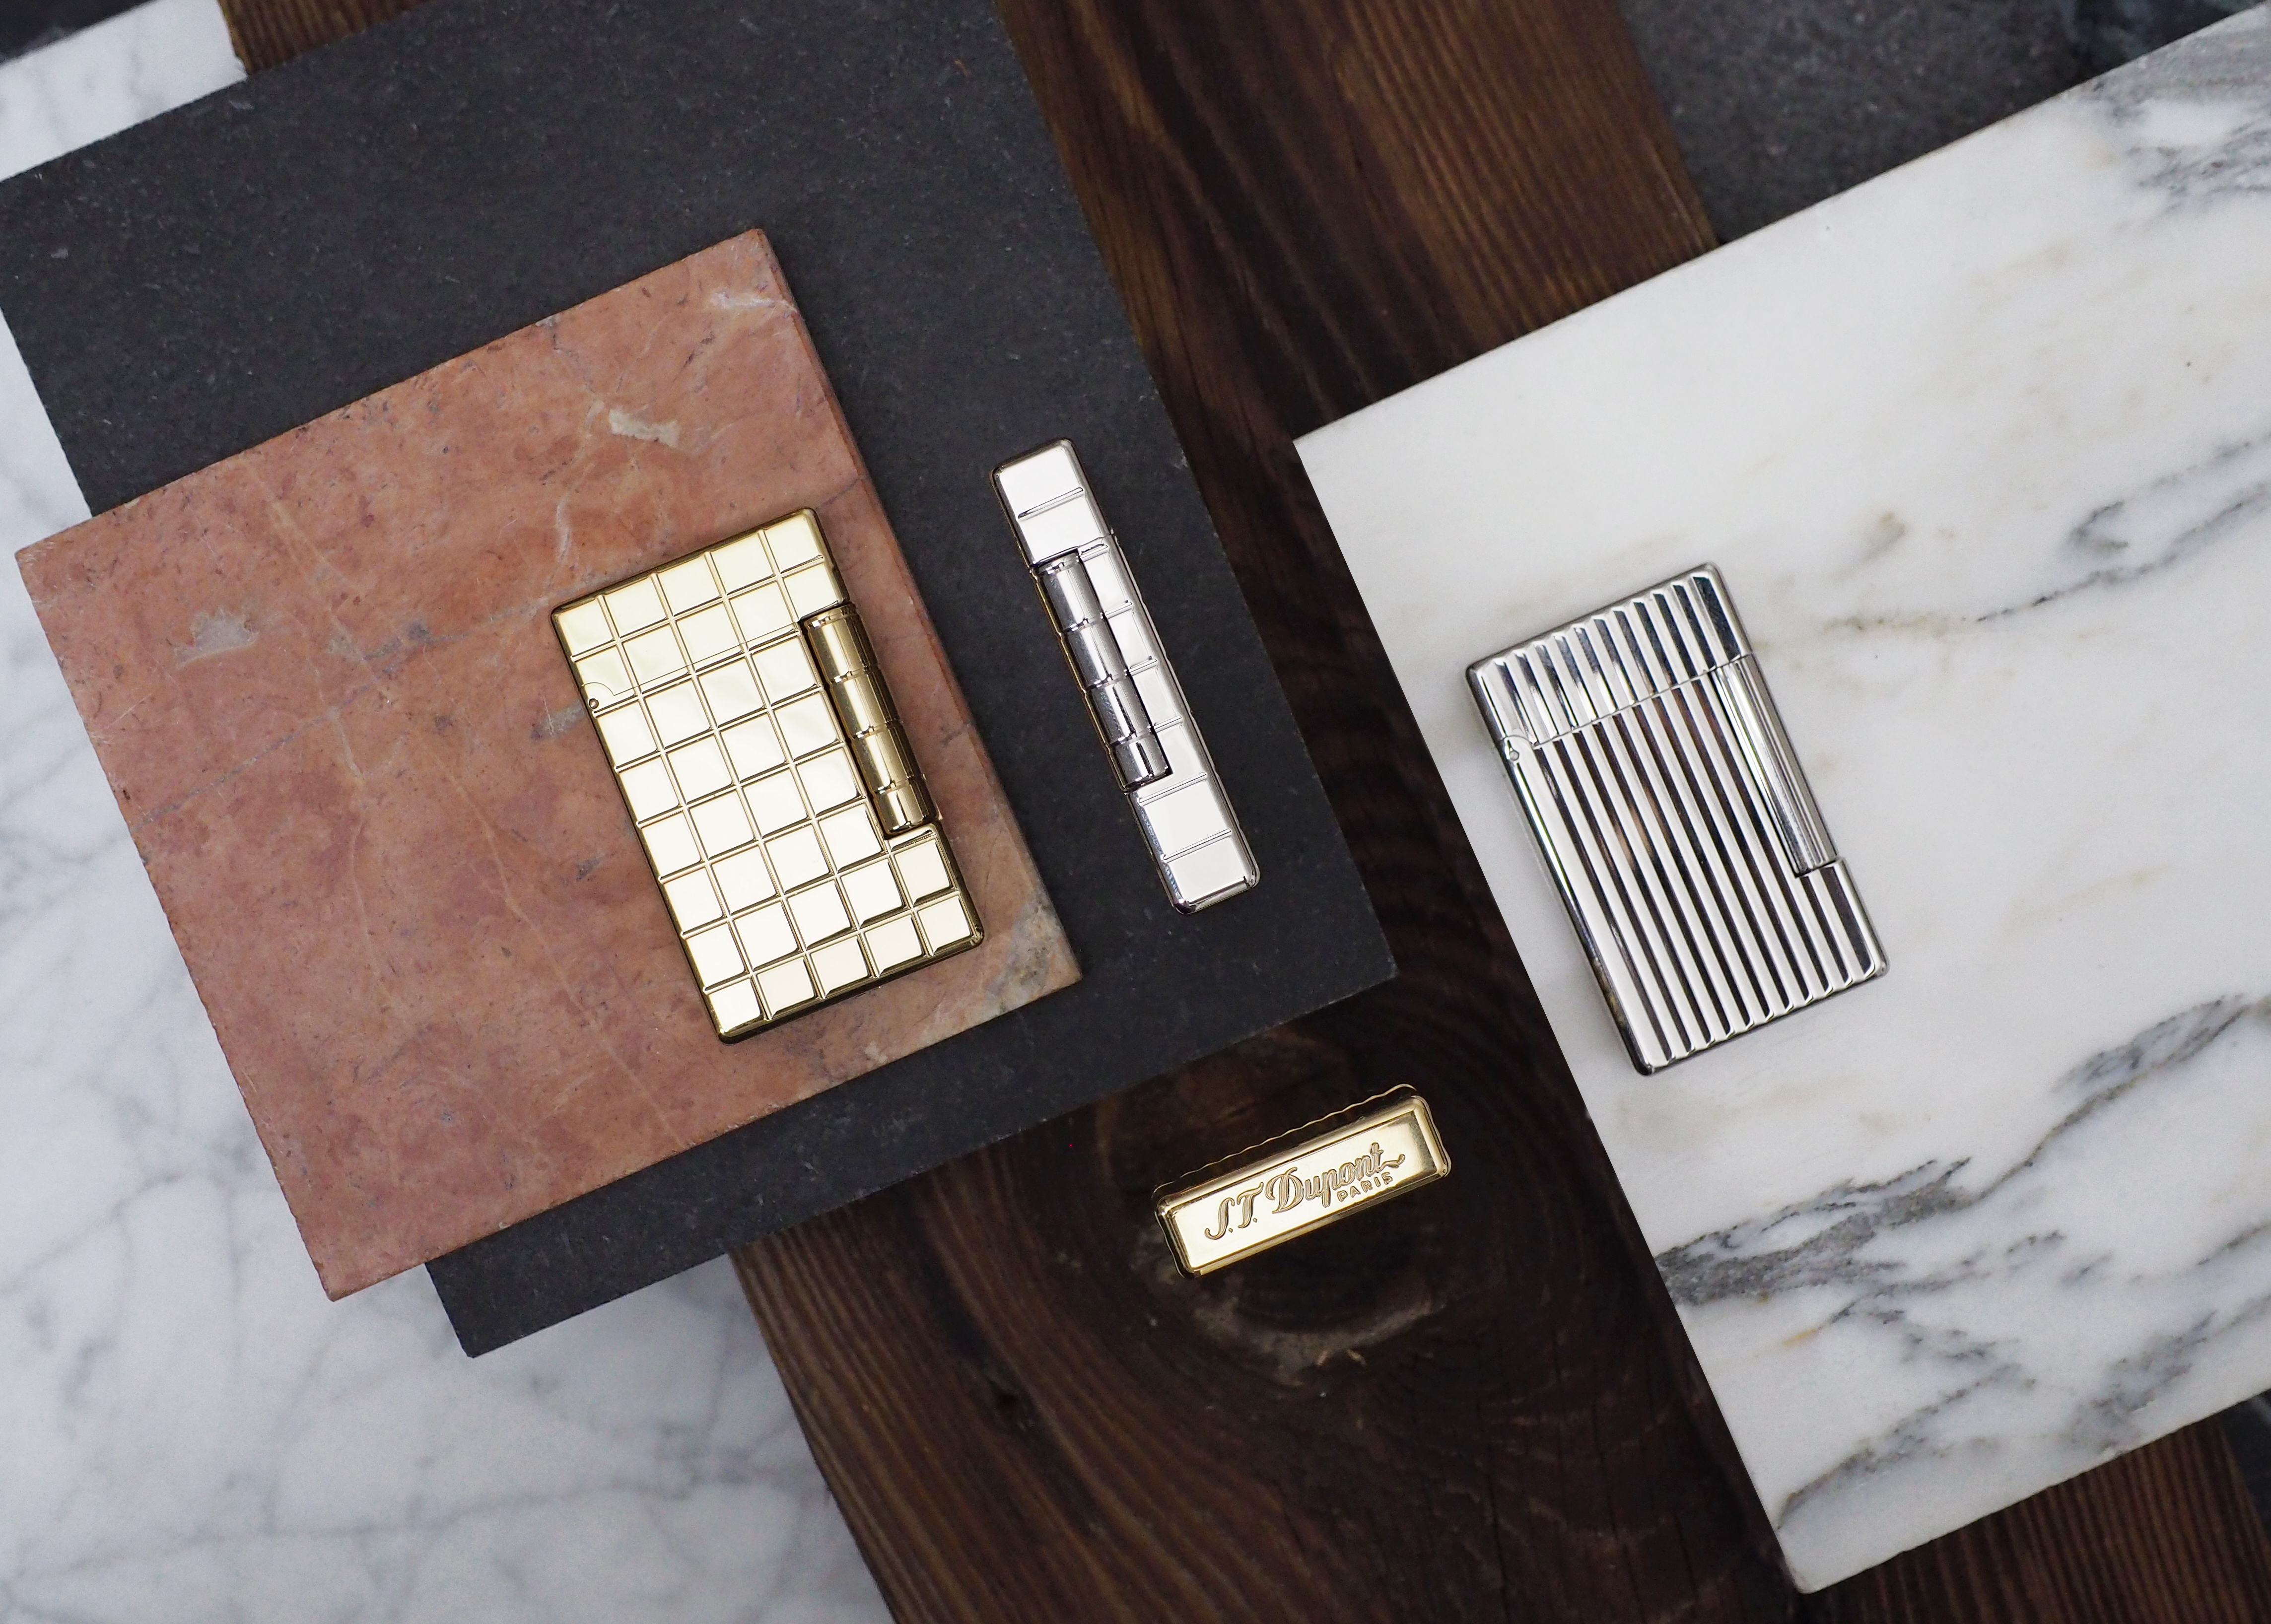 Cigar News: S.T. Dupont Initial Lighter Commemorates 75 Years of Brand